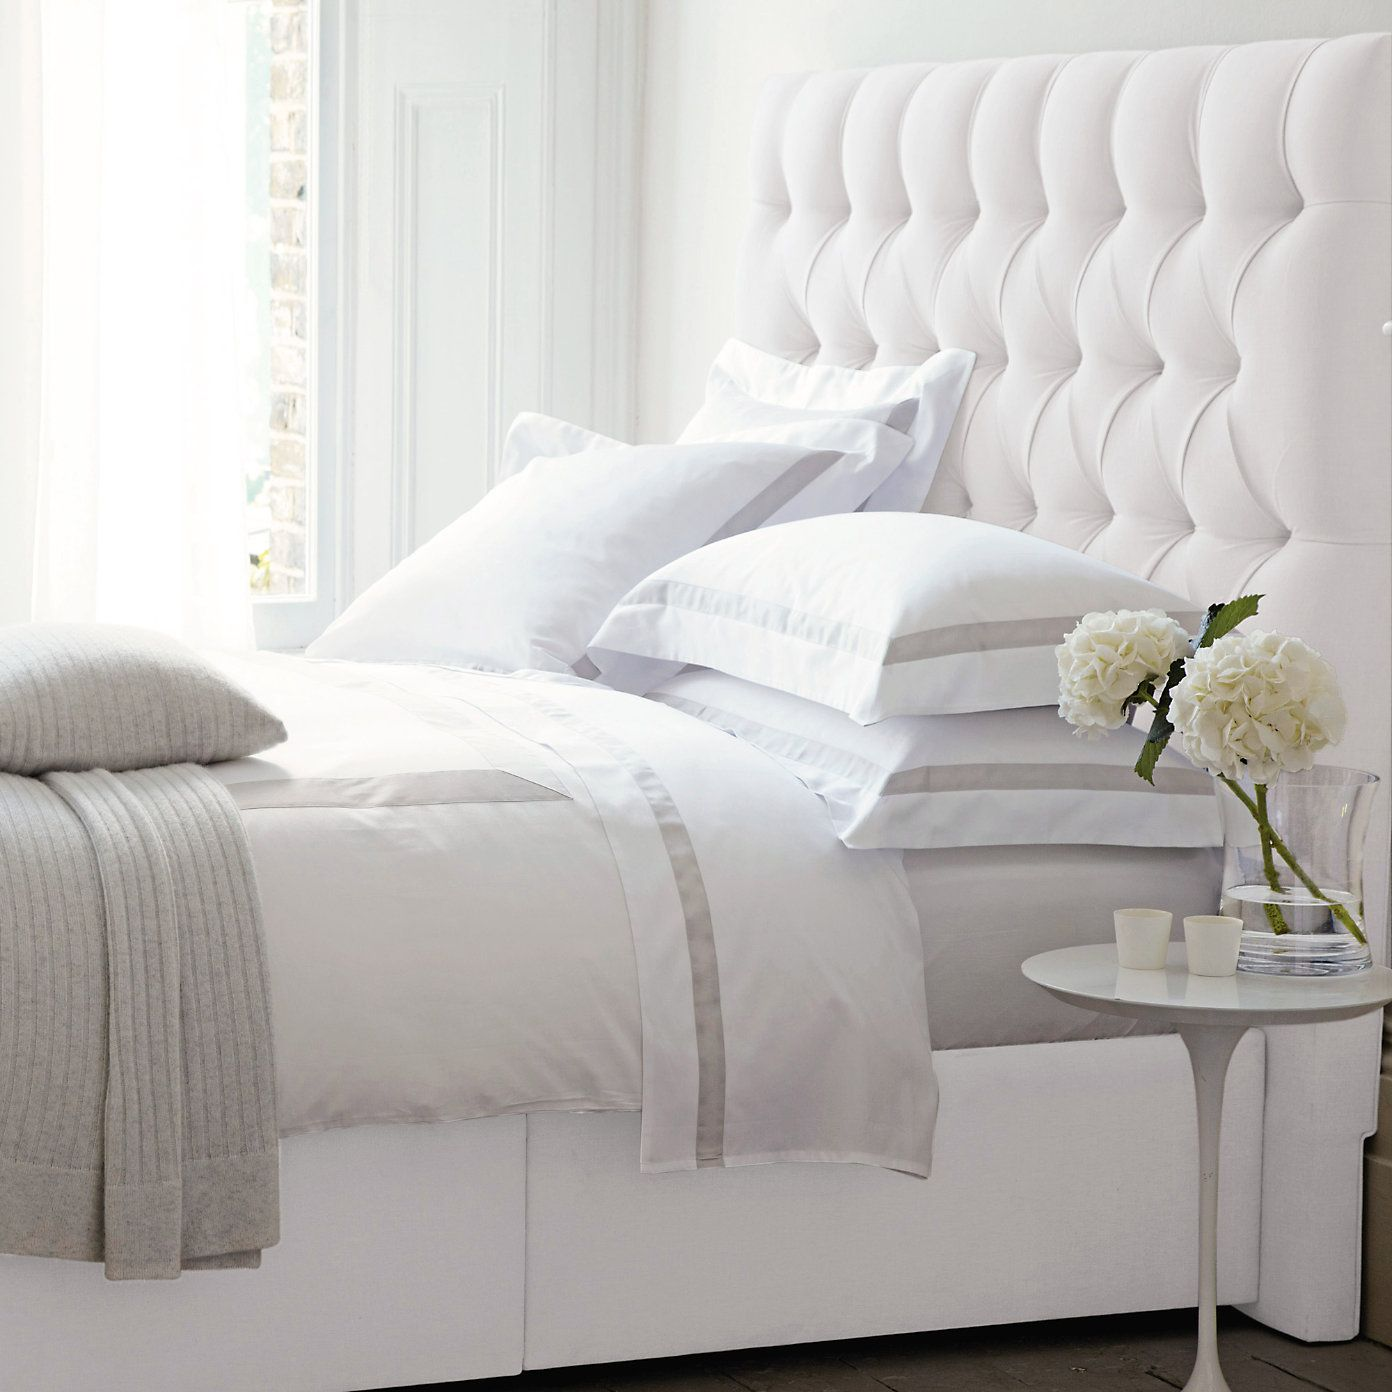 Iron Beds Australia Richmond Headboard Beds The White Company For Peter